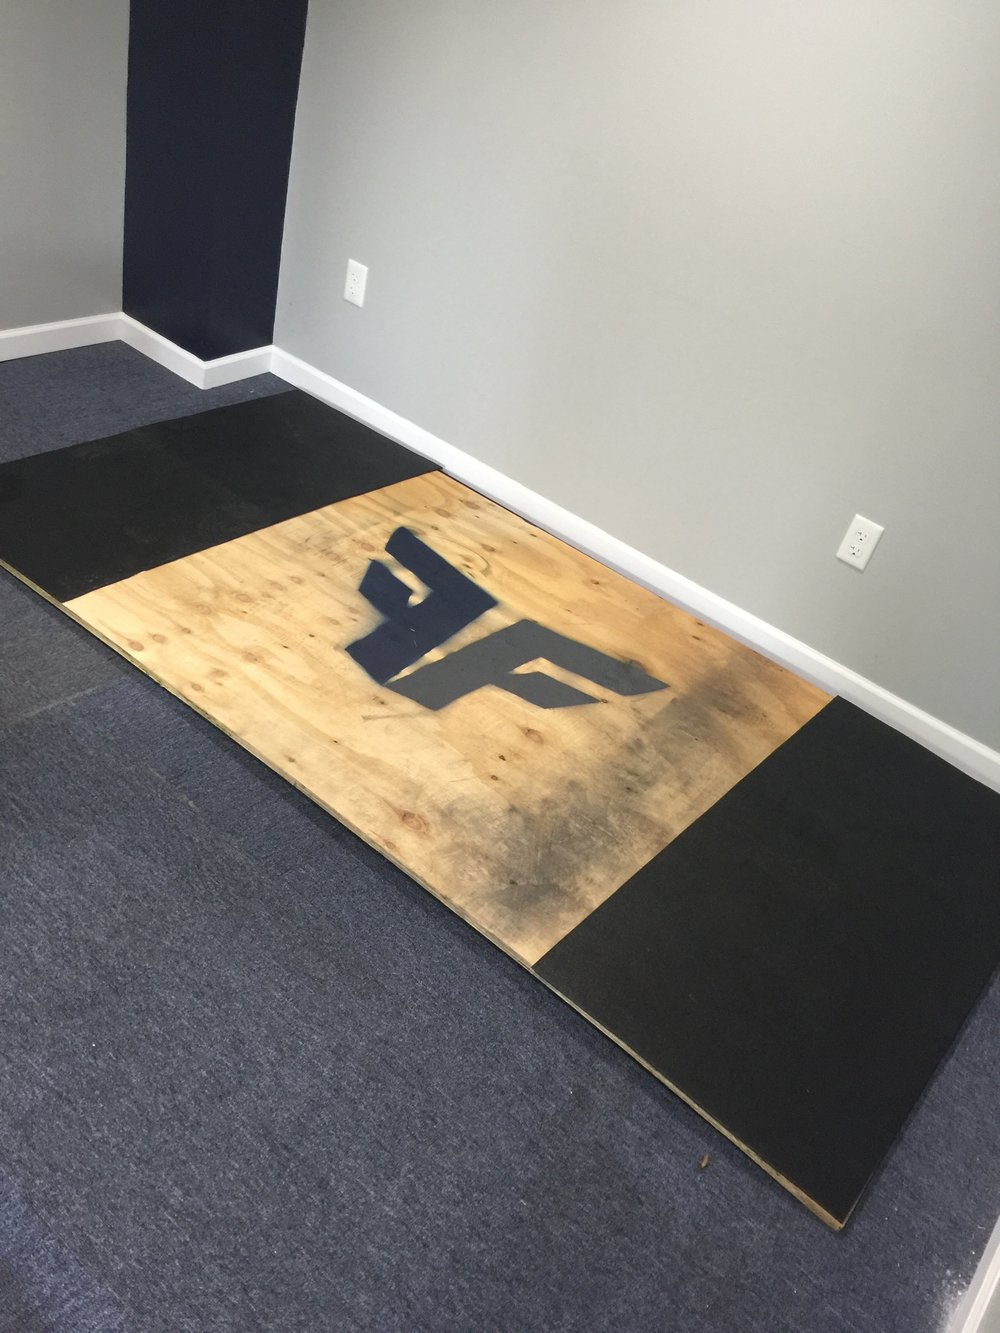 Indiana PA Gym equipment that we have includes a custom deadlifting platform.